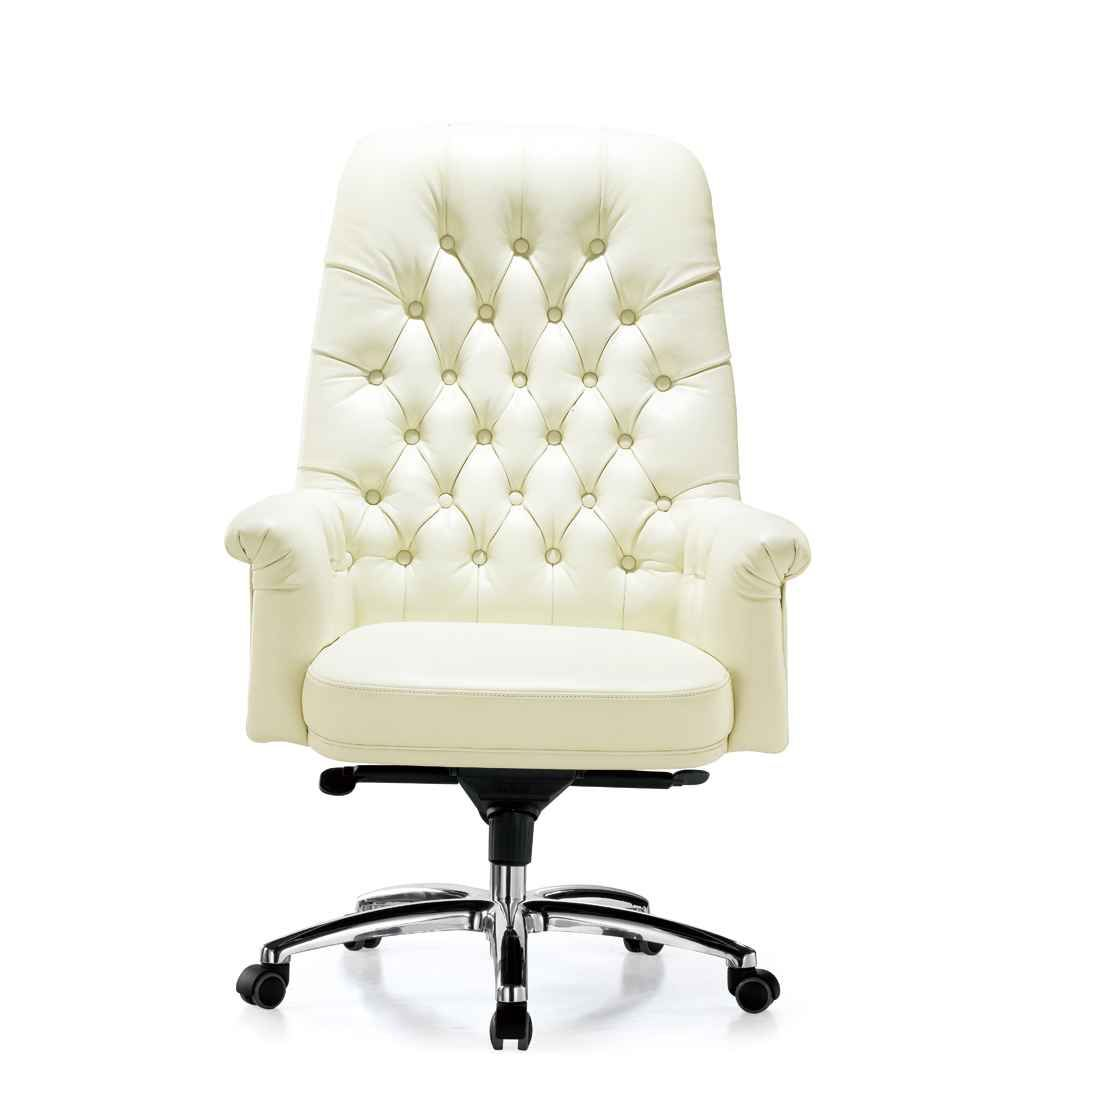 unique leather office chairs strongback chair coupon 20 stylish and comfortable computer designs design ideas white swivel for desk